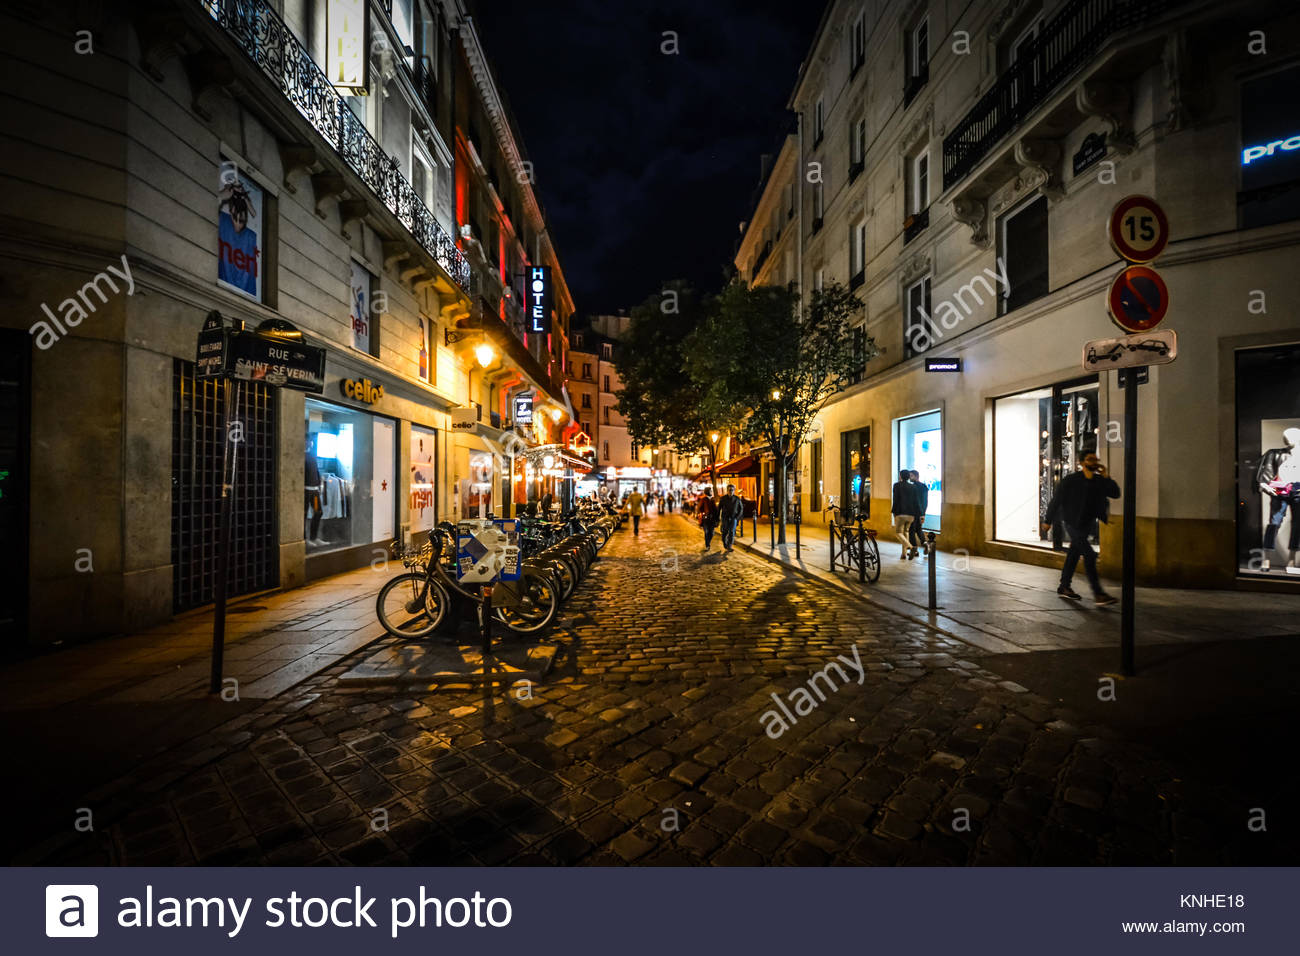 A row of bicycles for rent on a colorful street in the Latin Quarter of Paris France late at night - Stock Image